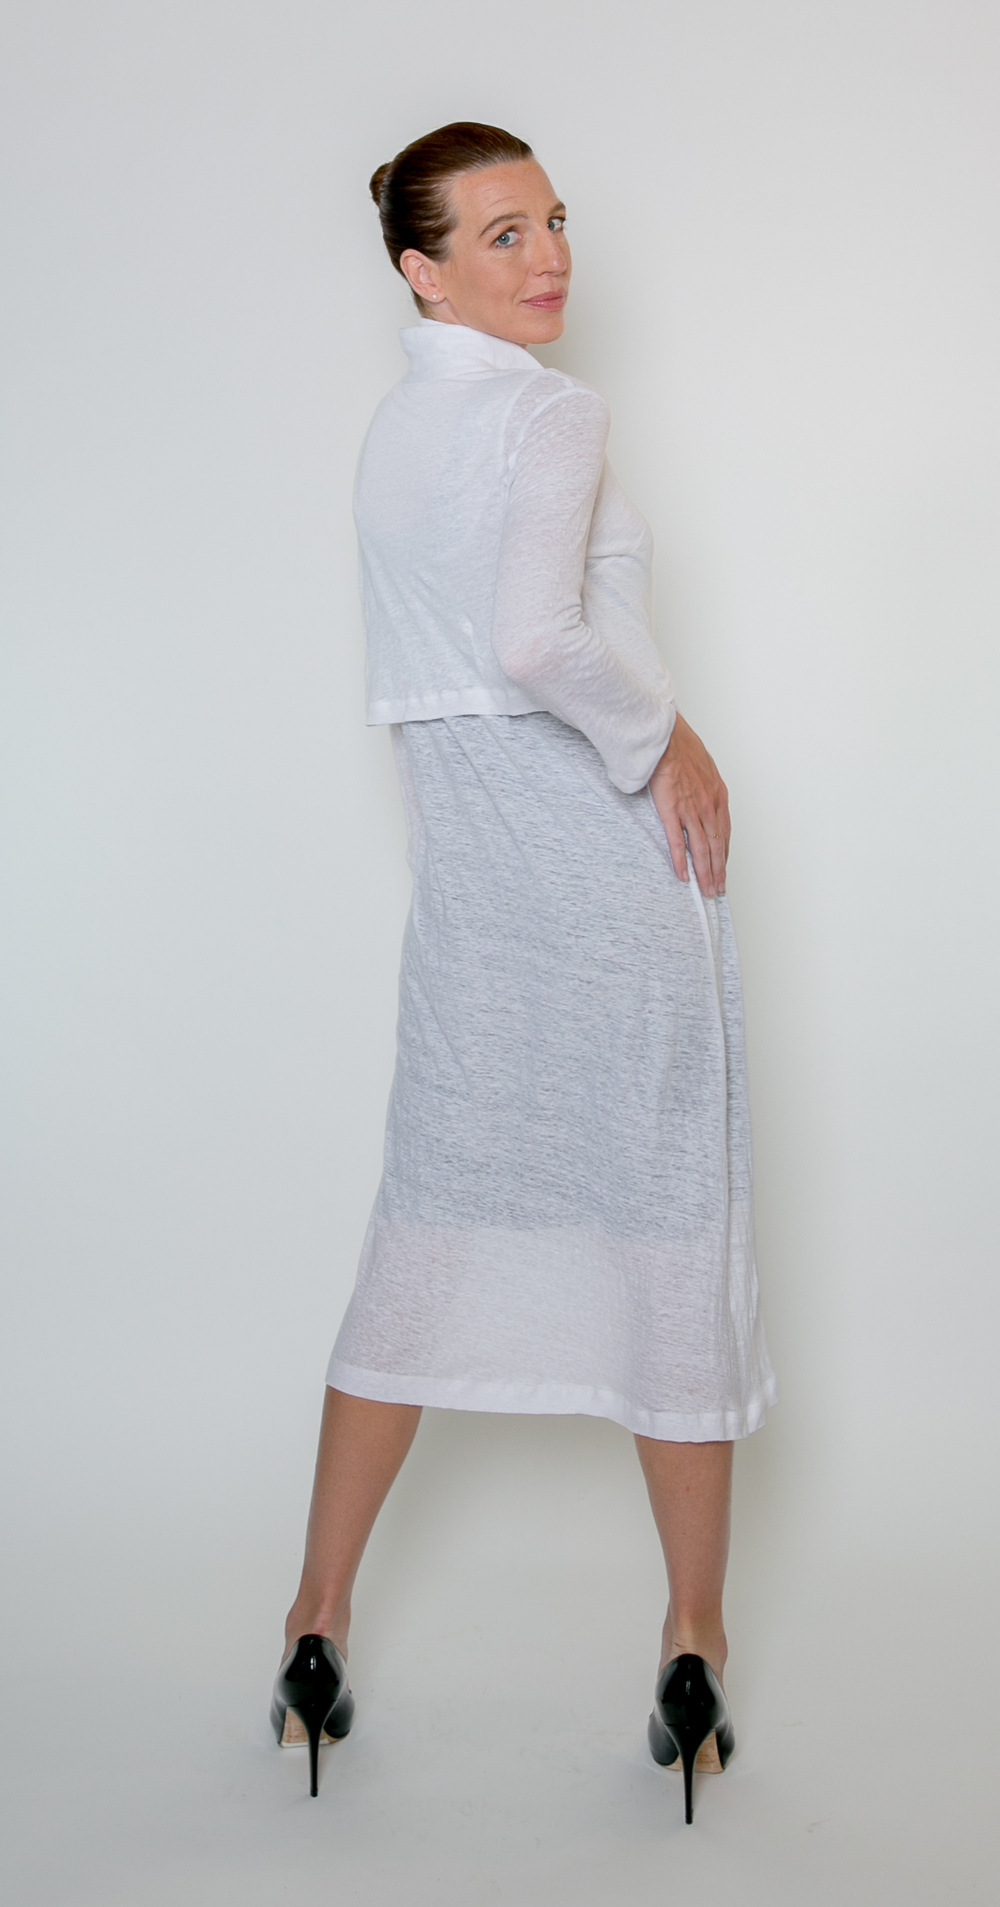 GiGi Pullover + Rejuvenate Dress